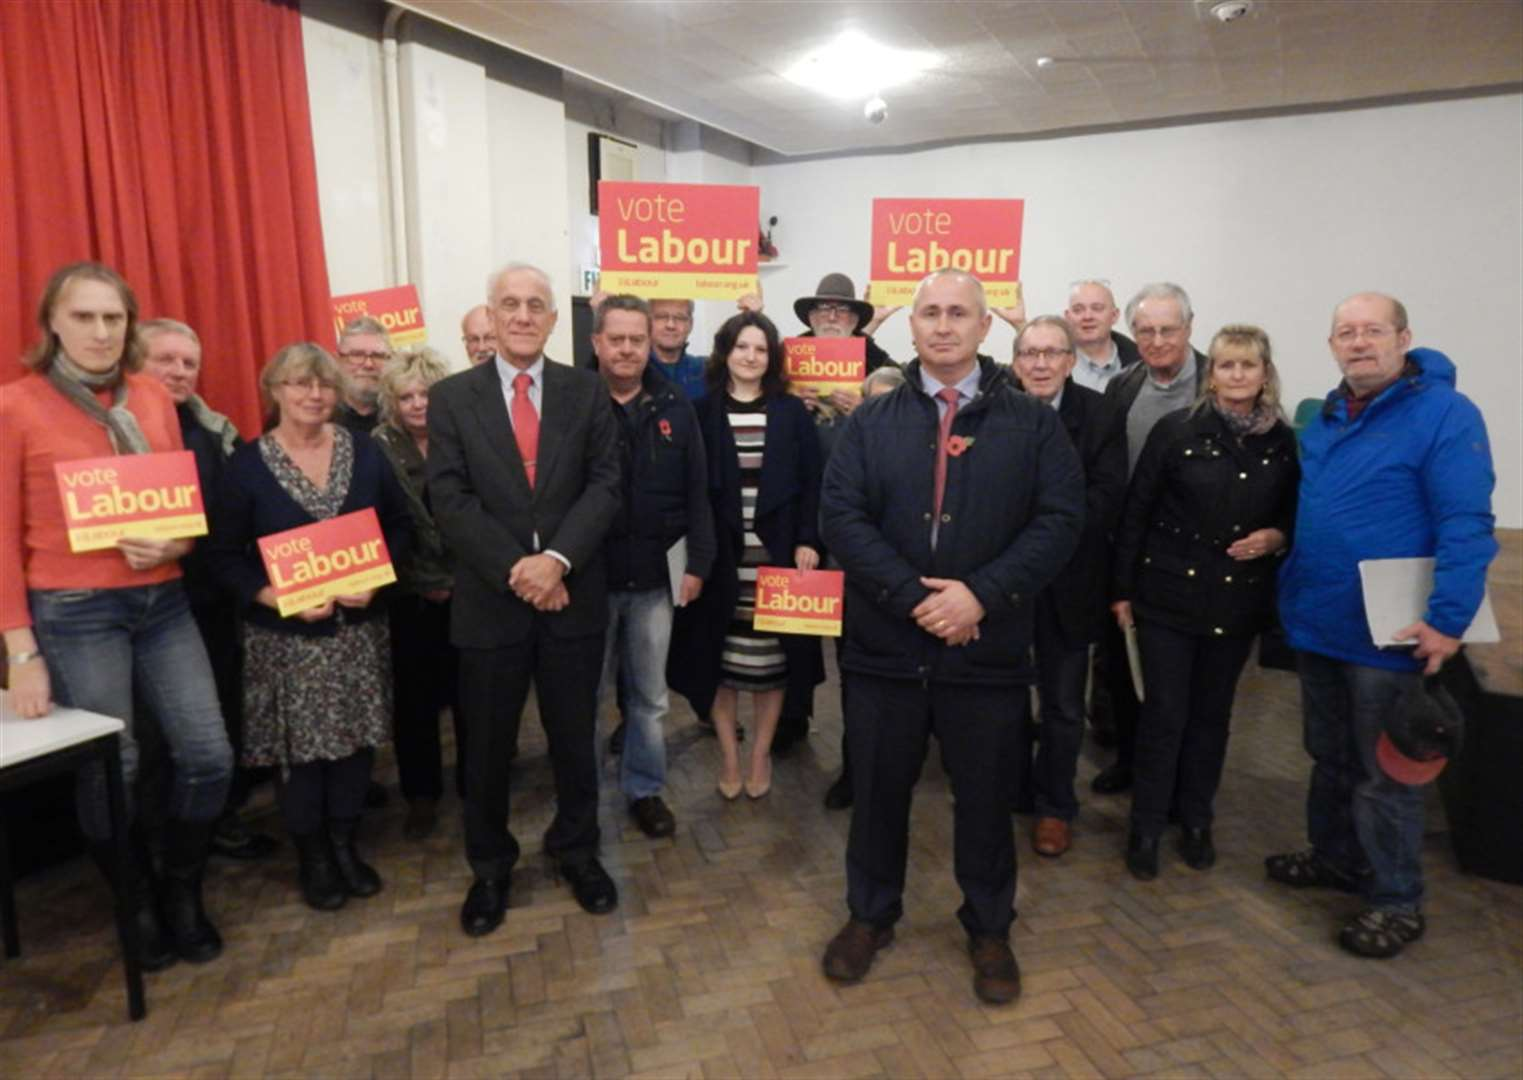 Labour party selects candidate for Sleaford and North Hykeham by-election